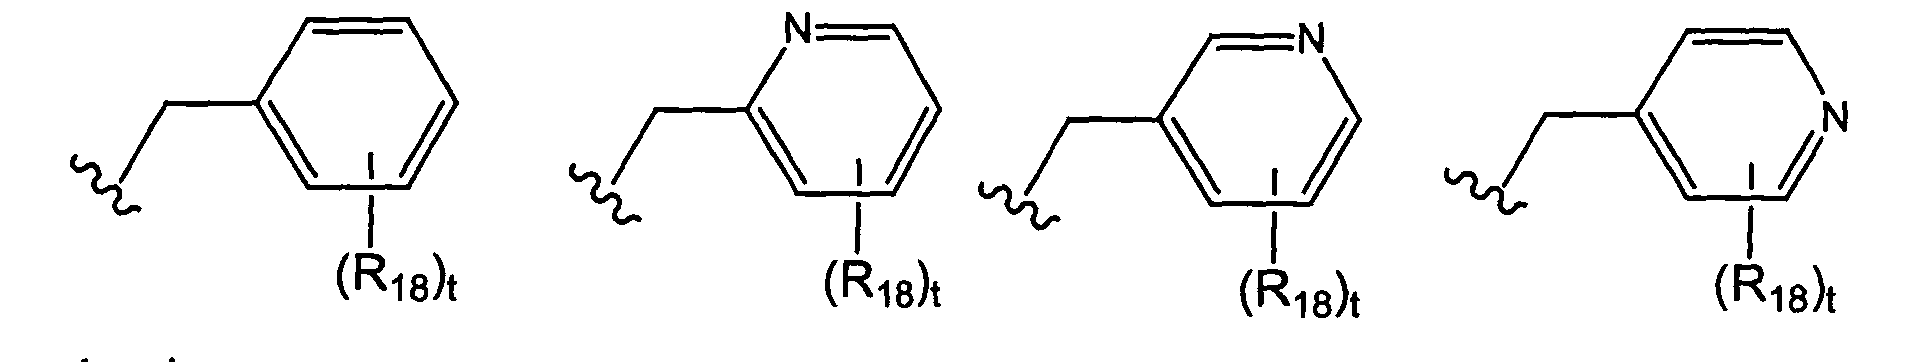 t is 0 1 2 3 4 or 5 and each r 18 is independently selected from the group consisting of halo perhalo c 1 10 alkyl cf 3 c 1 10 alkyl alkenyl